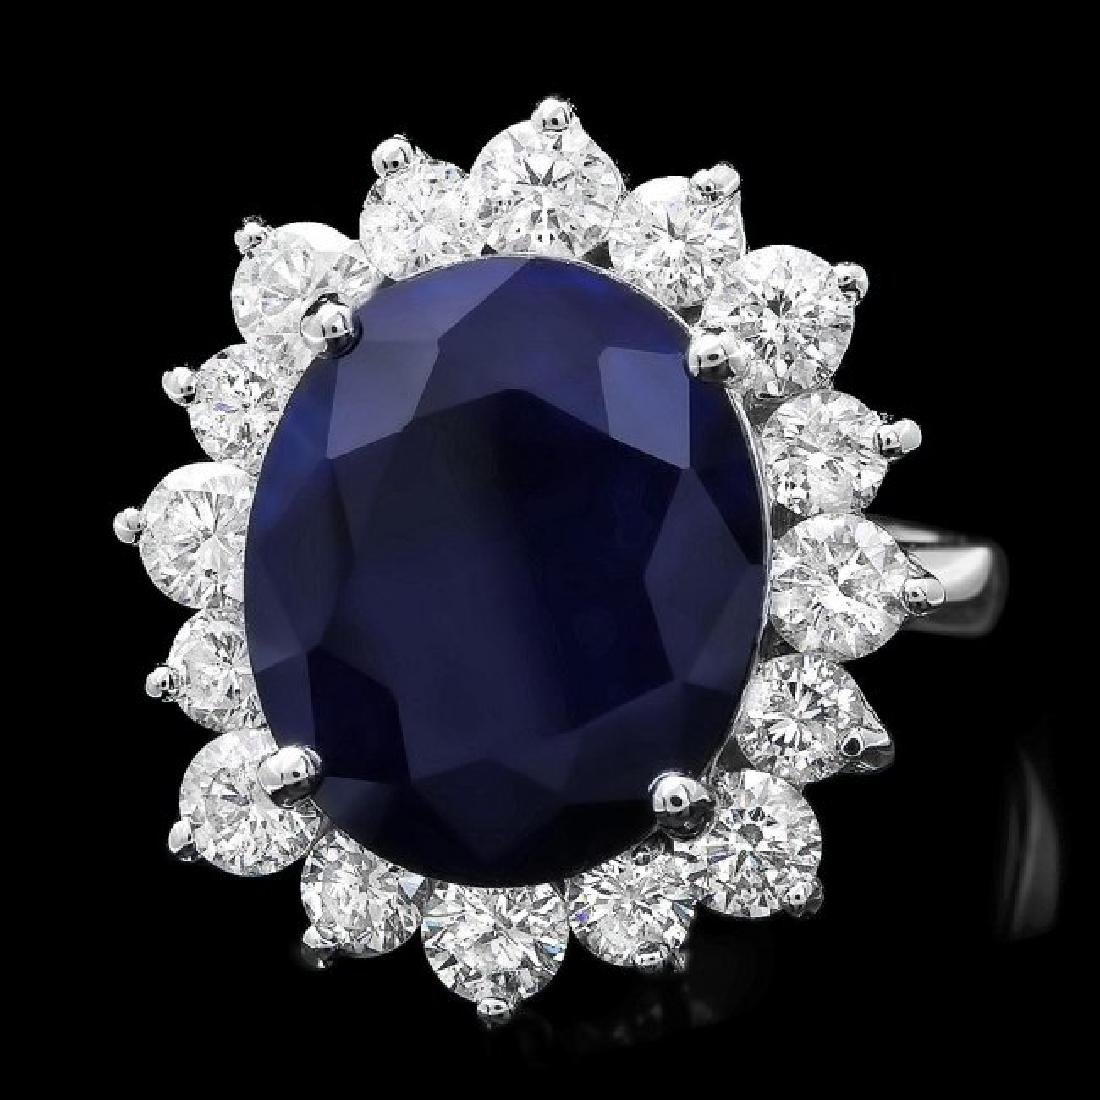 14k Gold 9.00ct Sapphire 2.00ct Diamond Ring